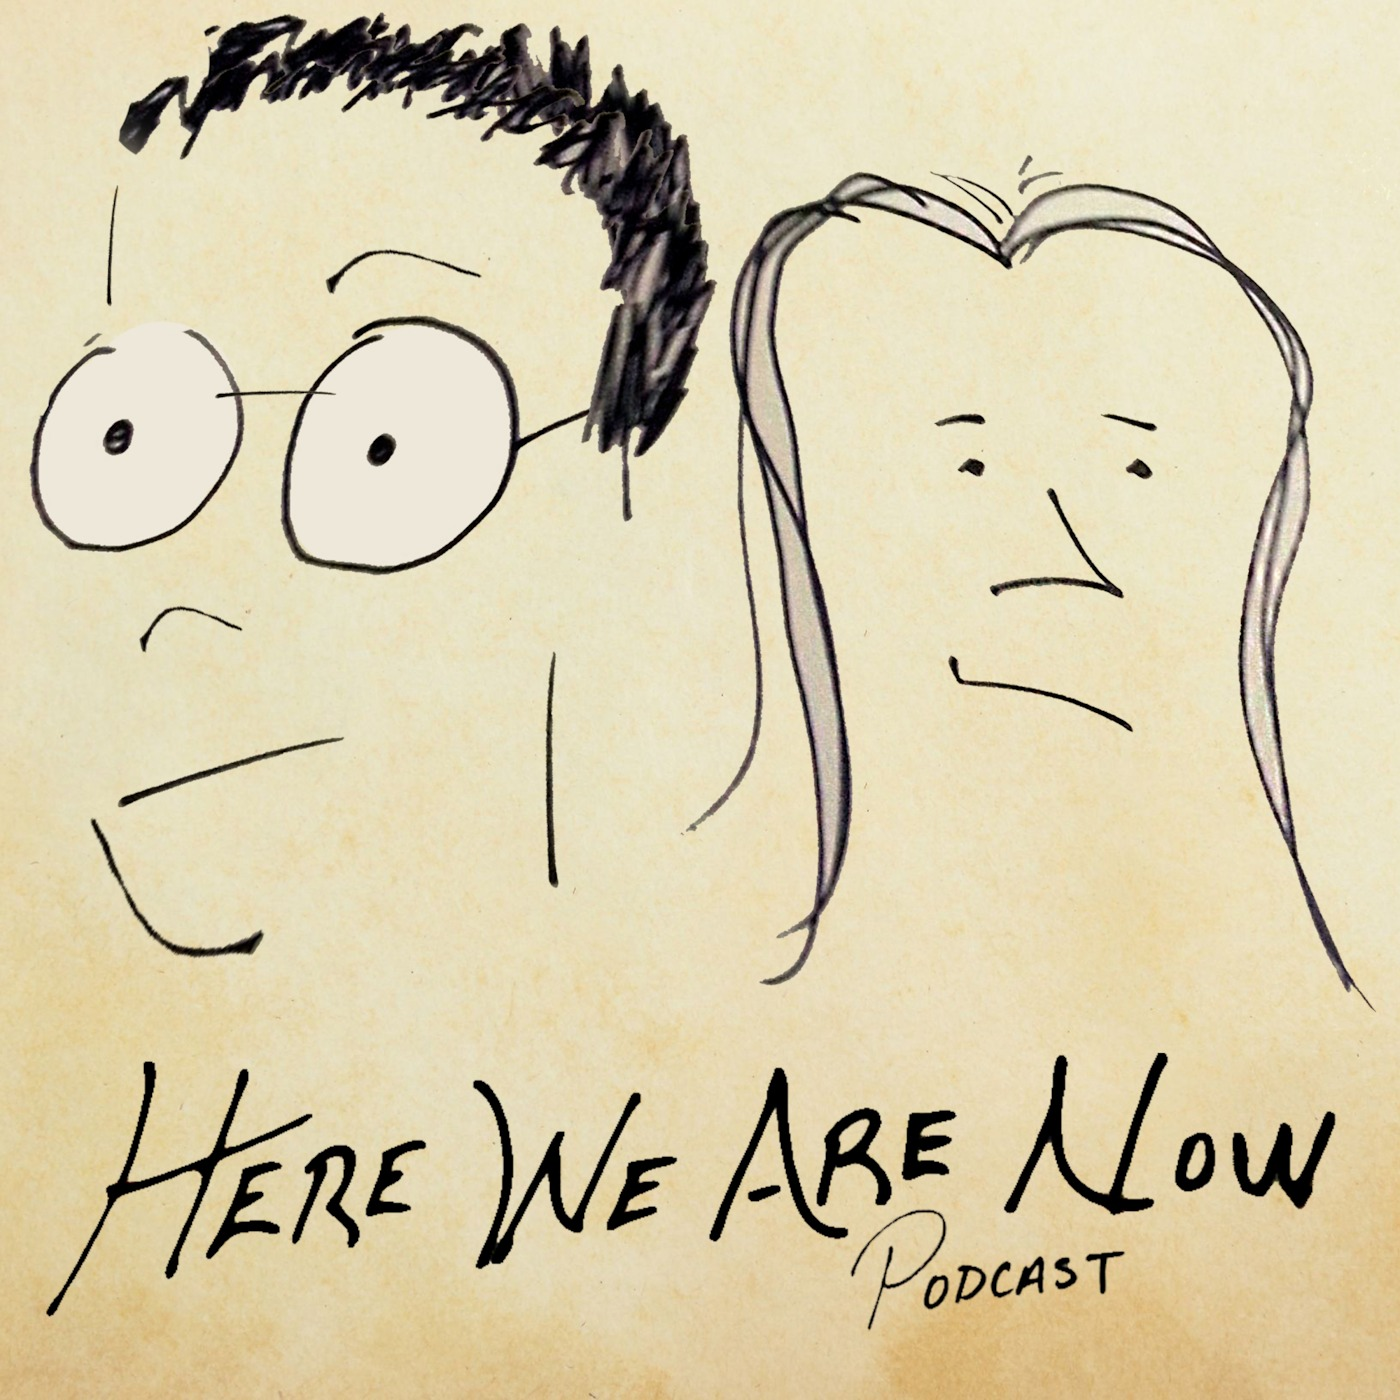 Here We Are Now Podcast